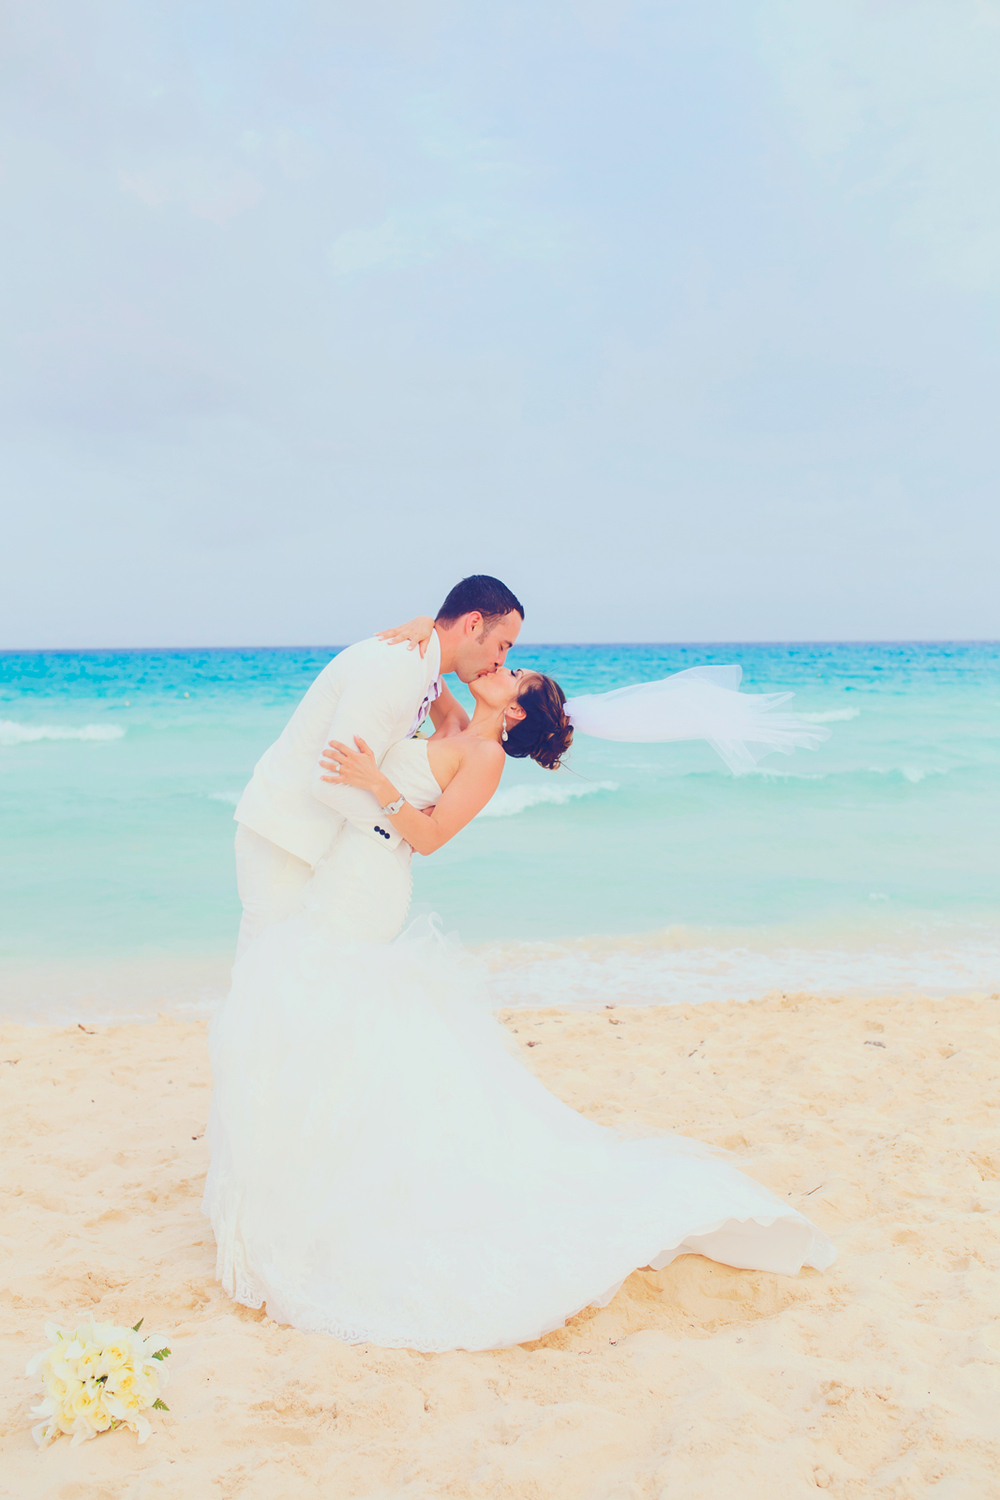 mexico destination wedding photographer, jennifer picard photography, vancouver wedding photographer